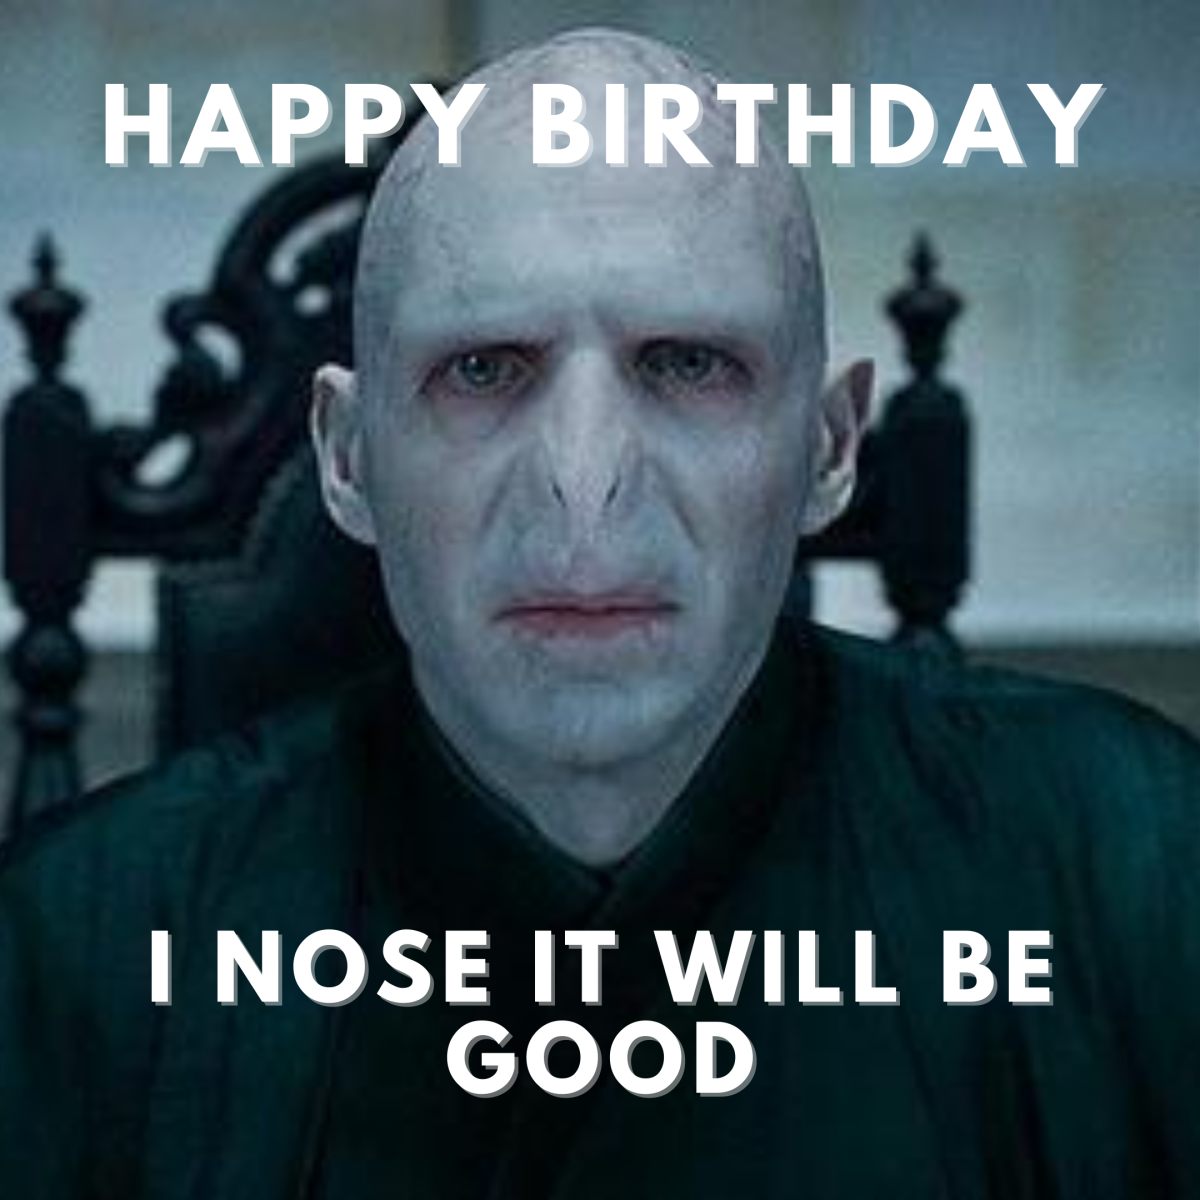 Happy birthday. I nose it will be good.